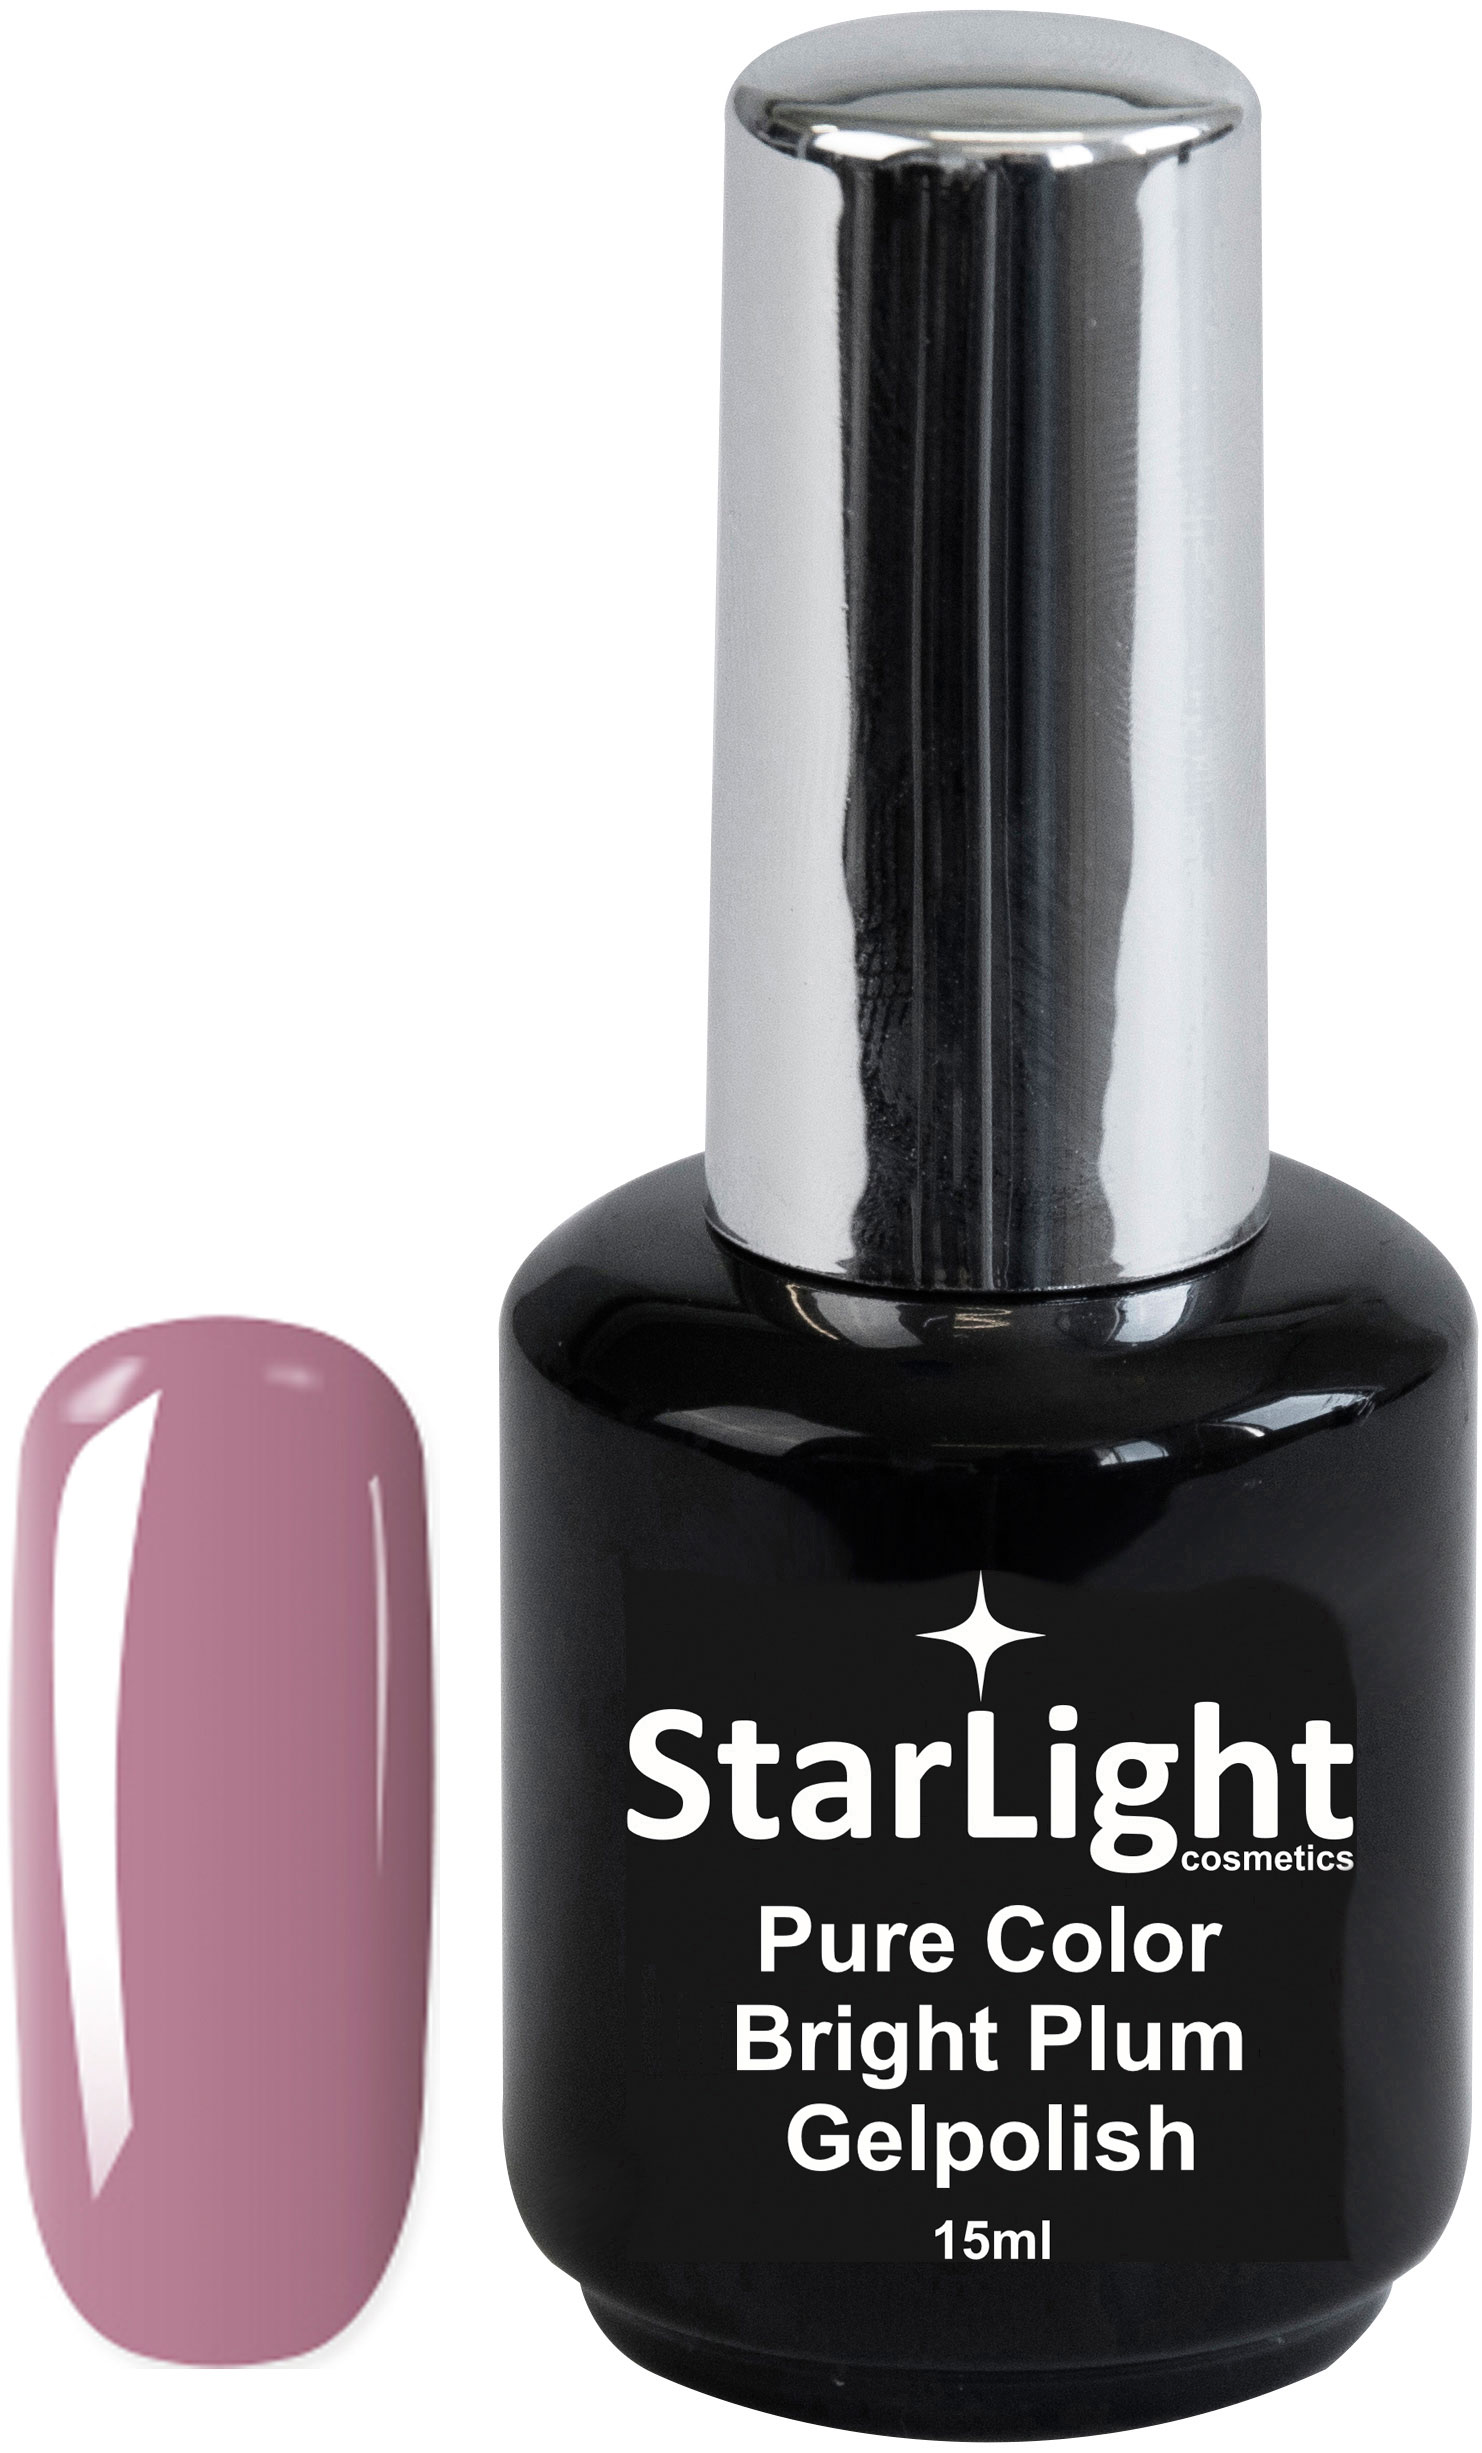 Naglar Gelpolish Pure Color Bright Plum - 15 ml